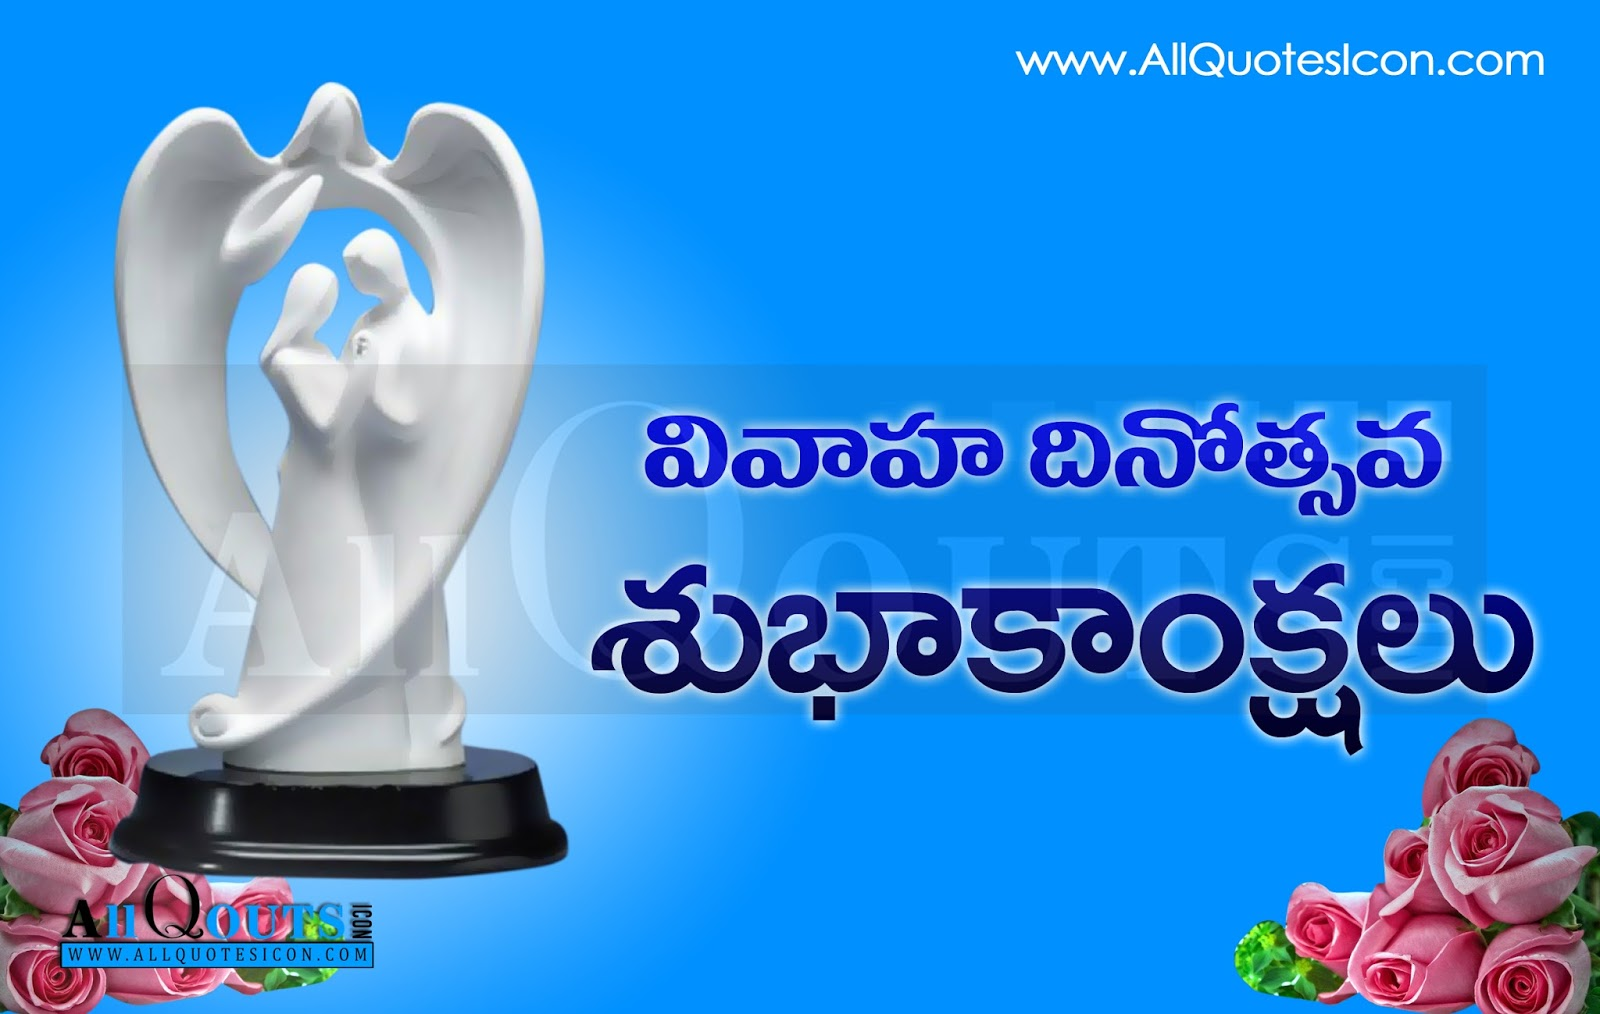 Telugu Marriage Day Wishes Hd Wallpapers Best Marriage Day Greetings